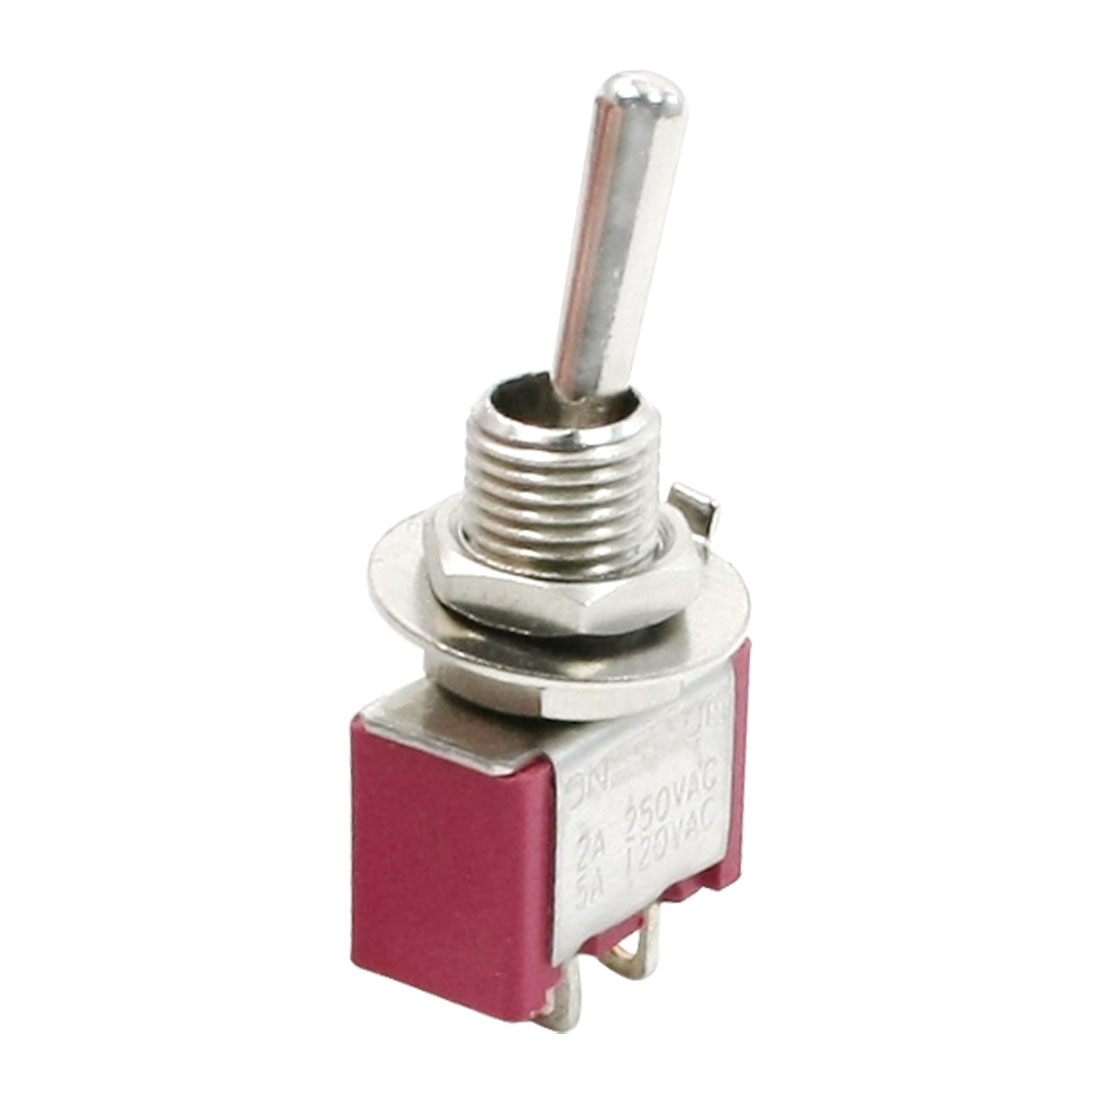 Red AC 125V 5A SPST On/Off 2 Positions Miniature Toggle Switch